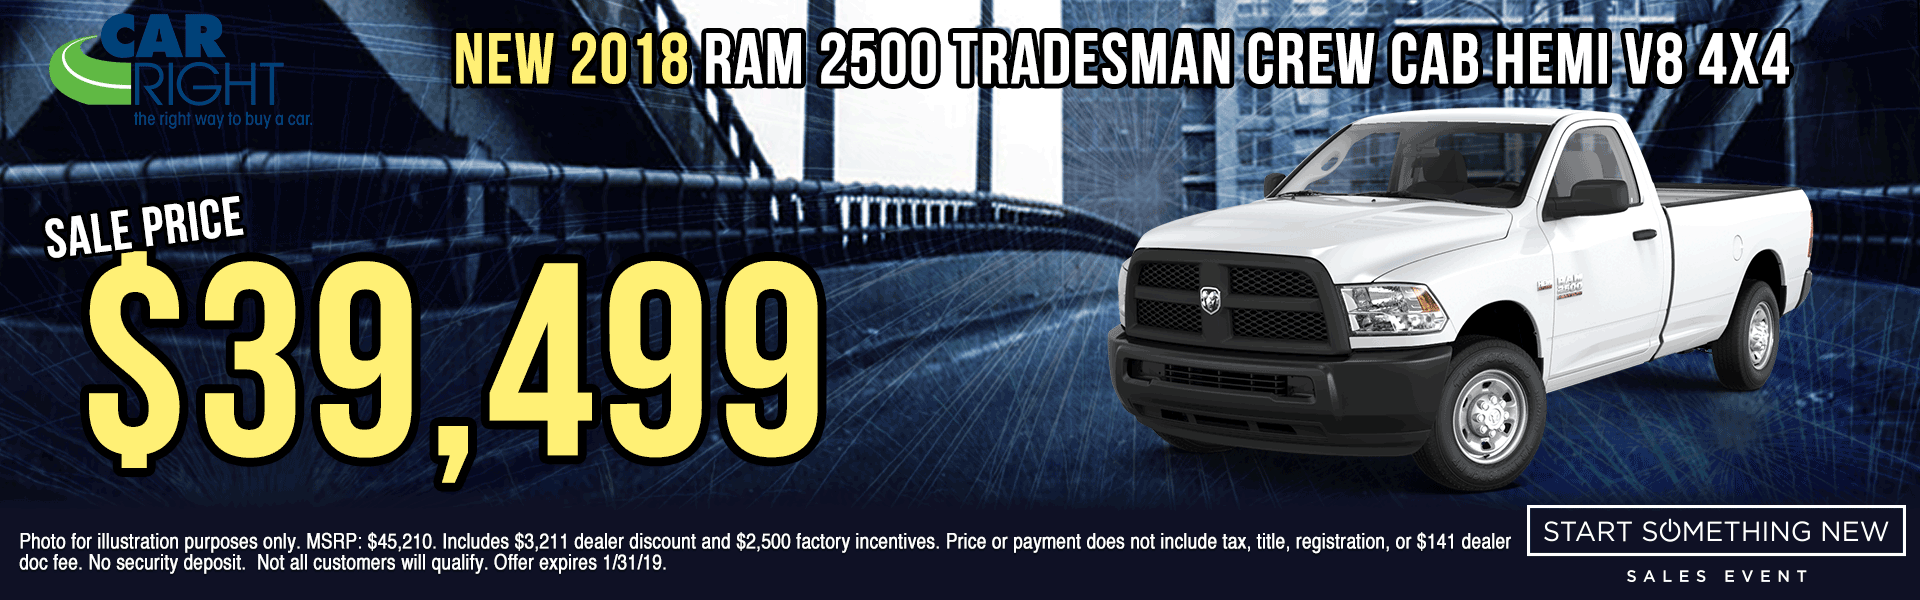 B2657---2018-RAM-2500-TRADESMAN-CREW-CAB-4X4 chrysler specials dodge specials jeep specials ram specials lease specials retail specials incentives shop now start something new sales event new vehicle specials carright specials